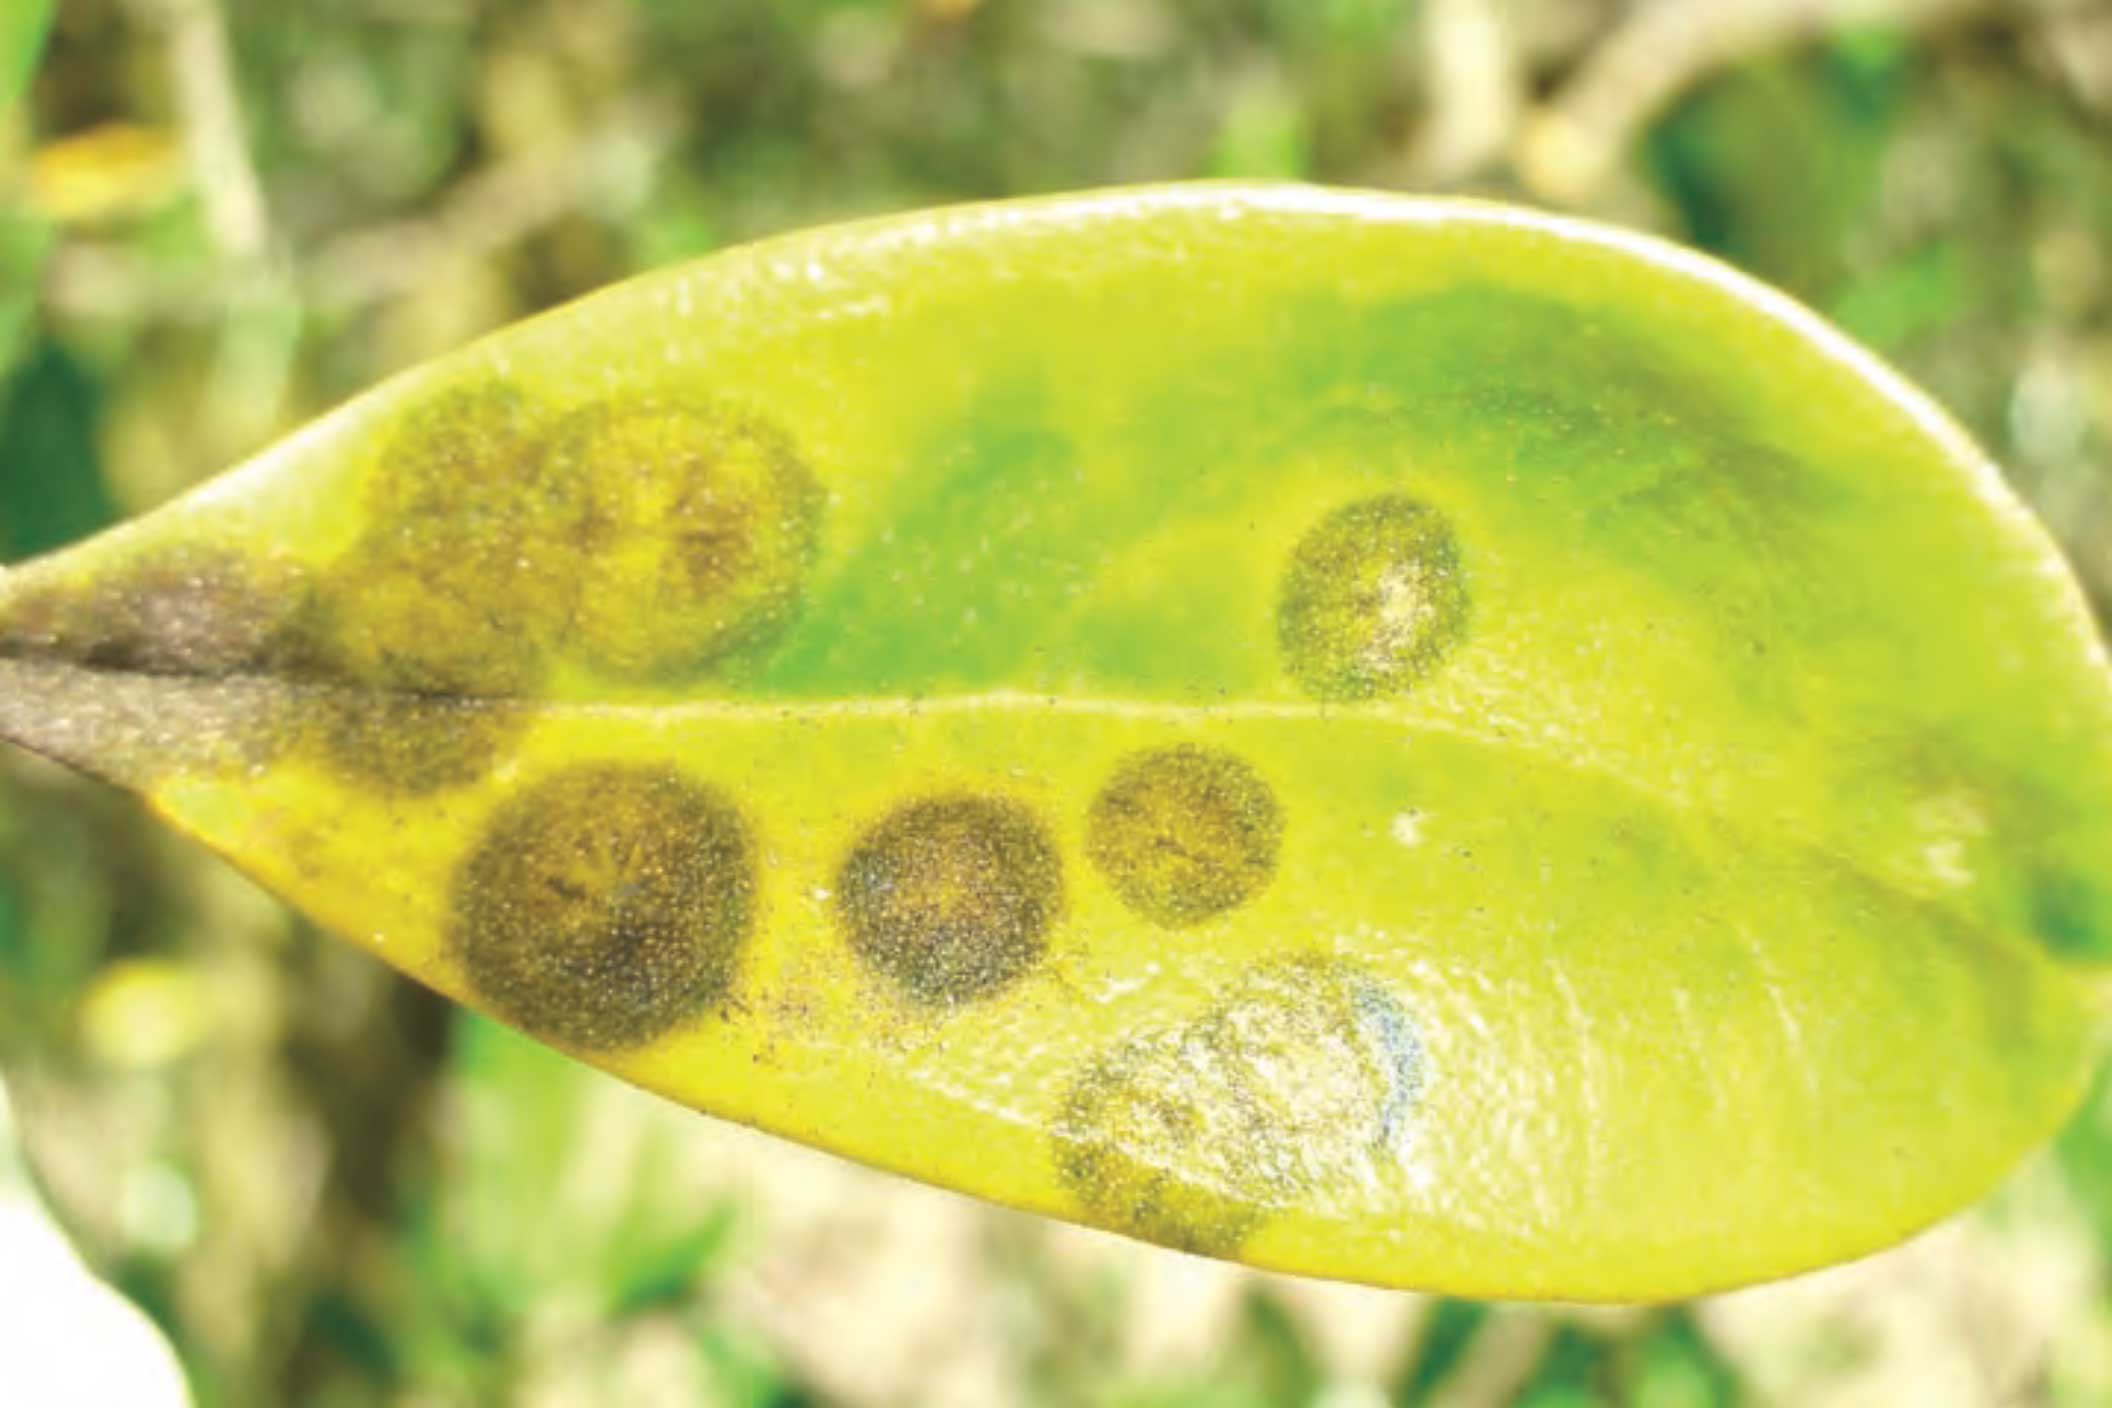 Using copper sprays to control olive diseases